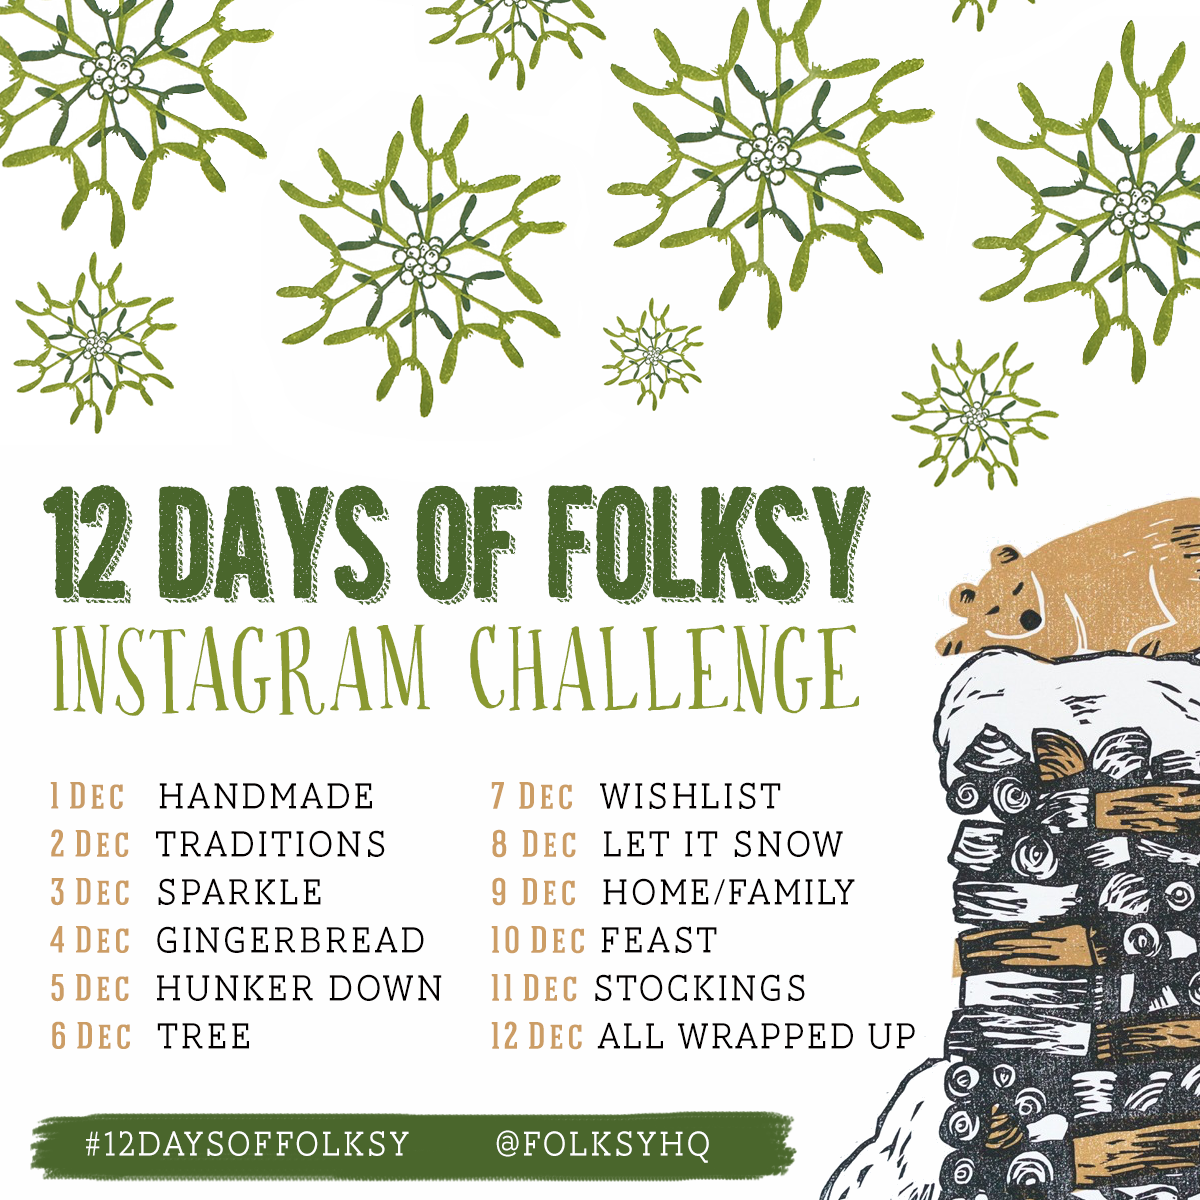 12 Days of Folksy, Instagram Challenge, Christmas Instagram Challenge, Instagram Challenge Prompts,